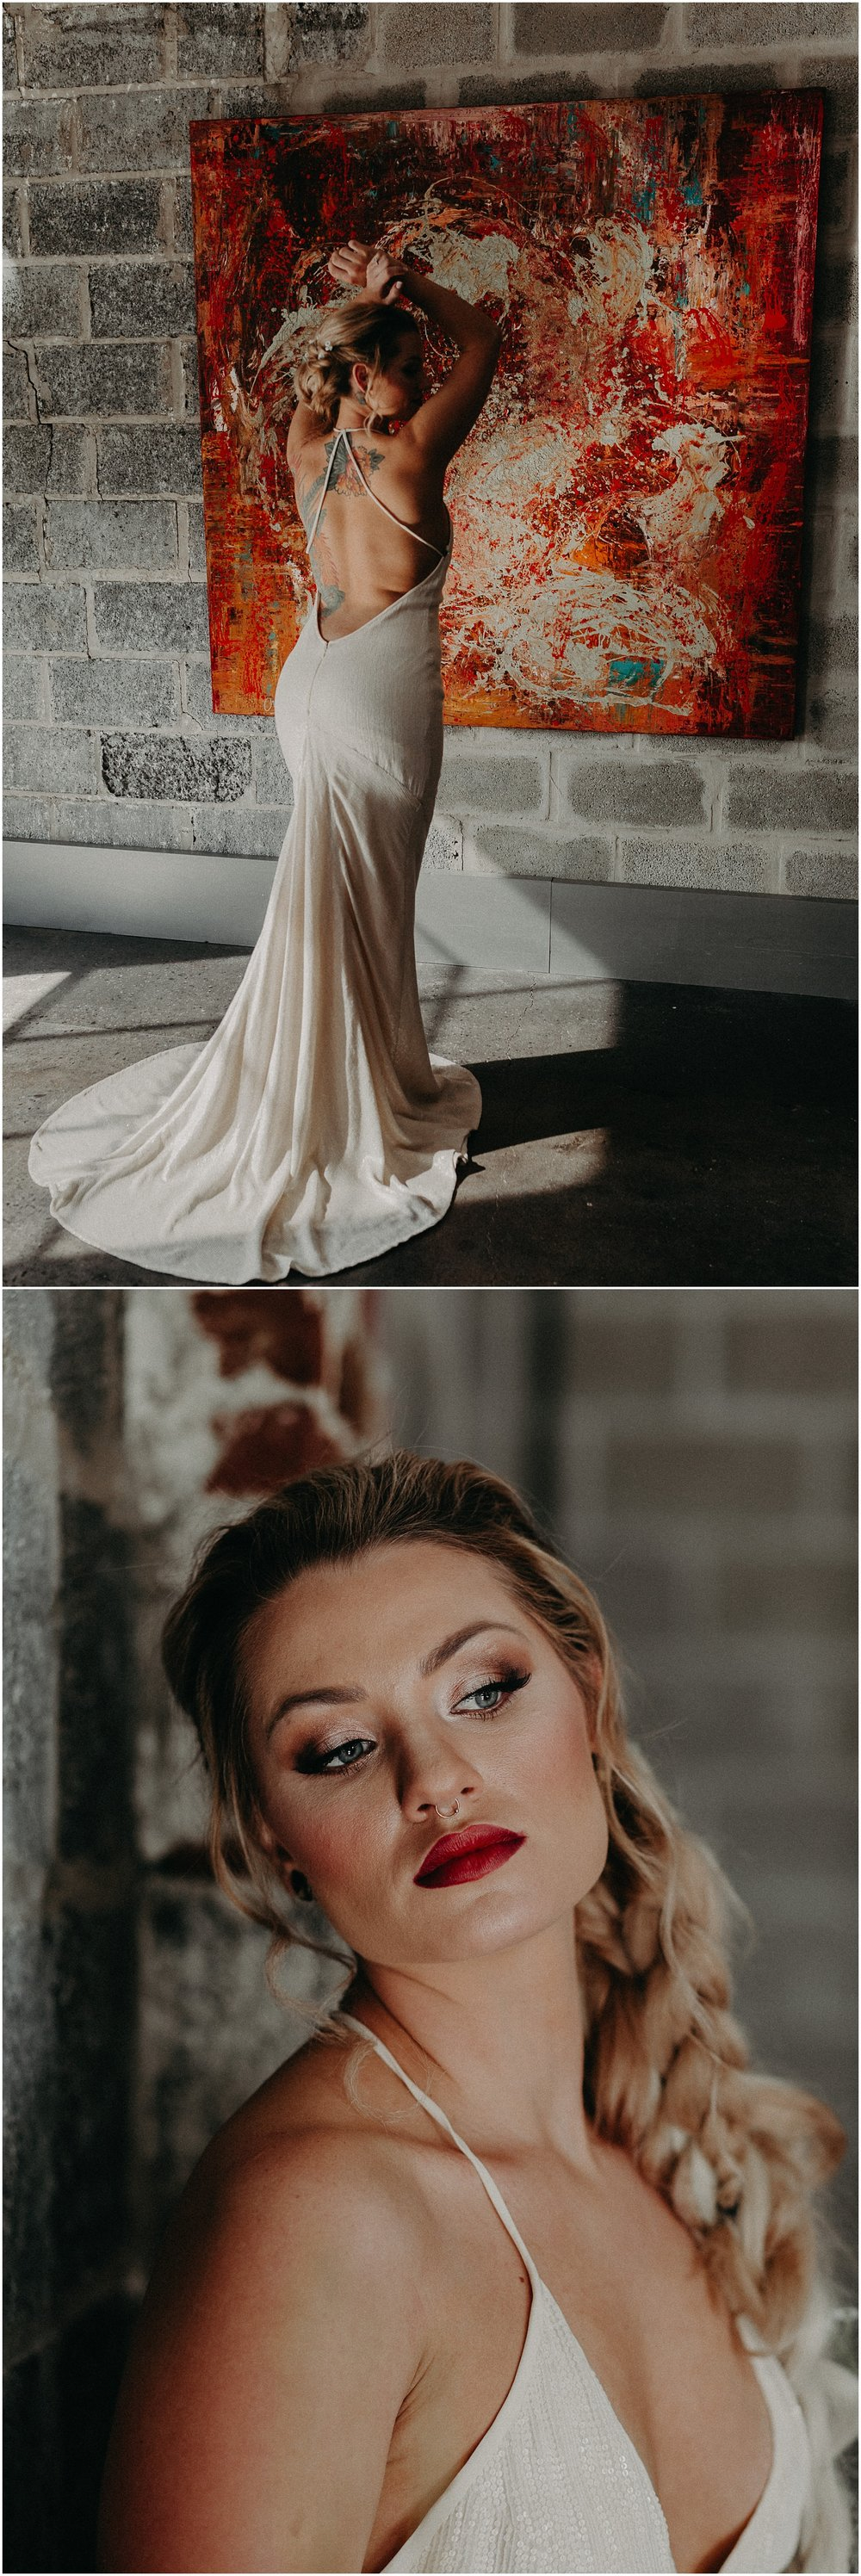 styled shoot-bridal portraits-portraits-bride-rock and roll-industrial-urban-wedding-inspiration-nj-new jersey-nyc-new york city-art-diy wedding_0075.jpg